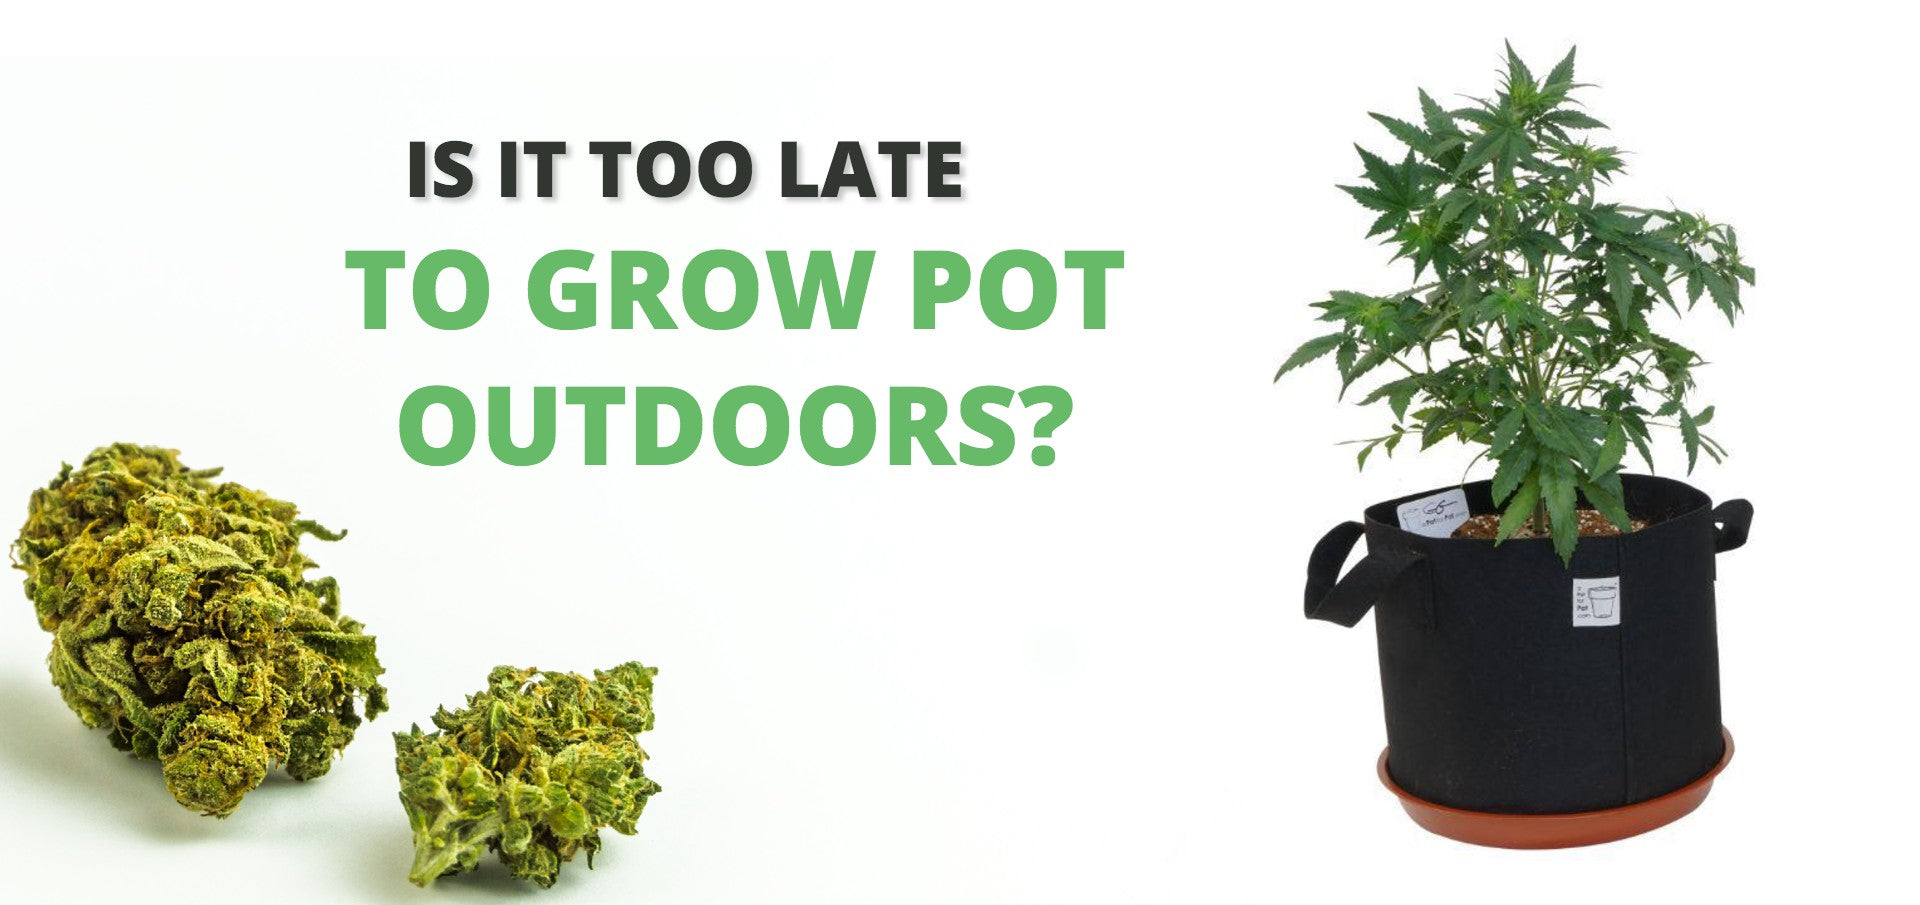 Is it too late to grow pot outdoors?